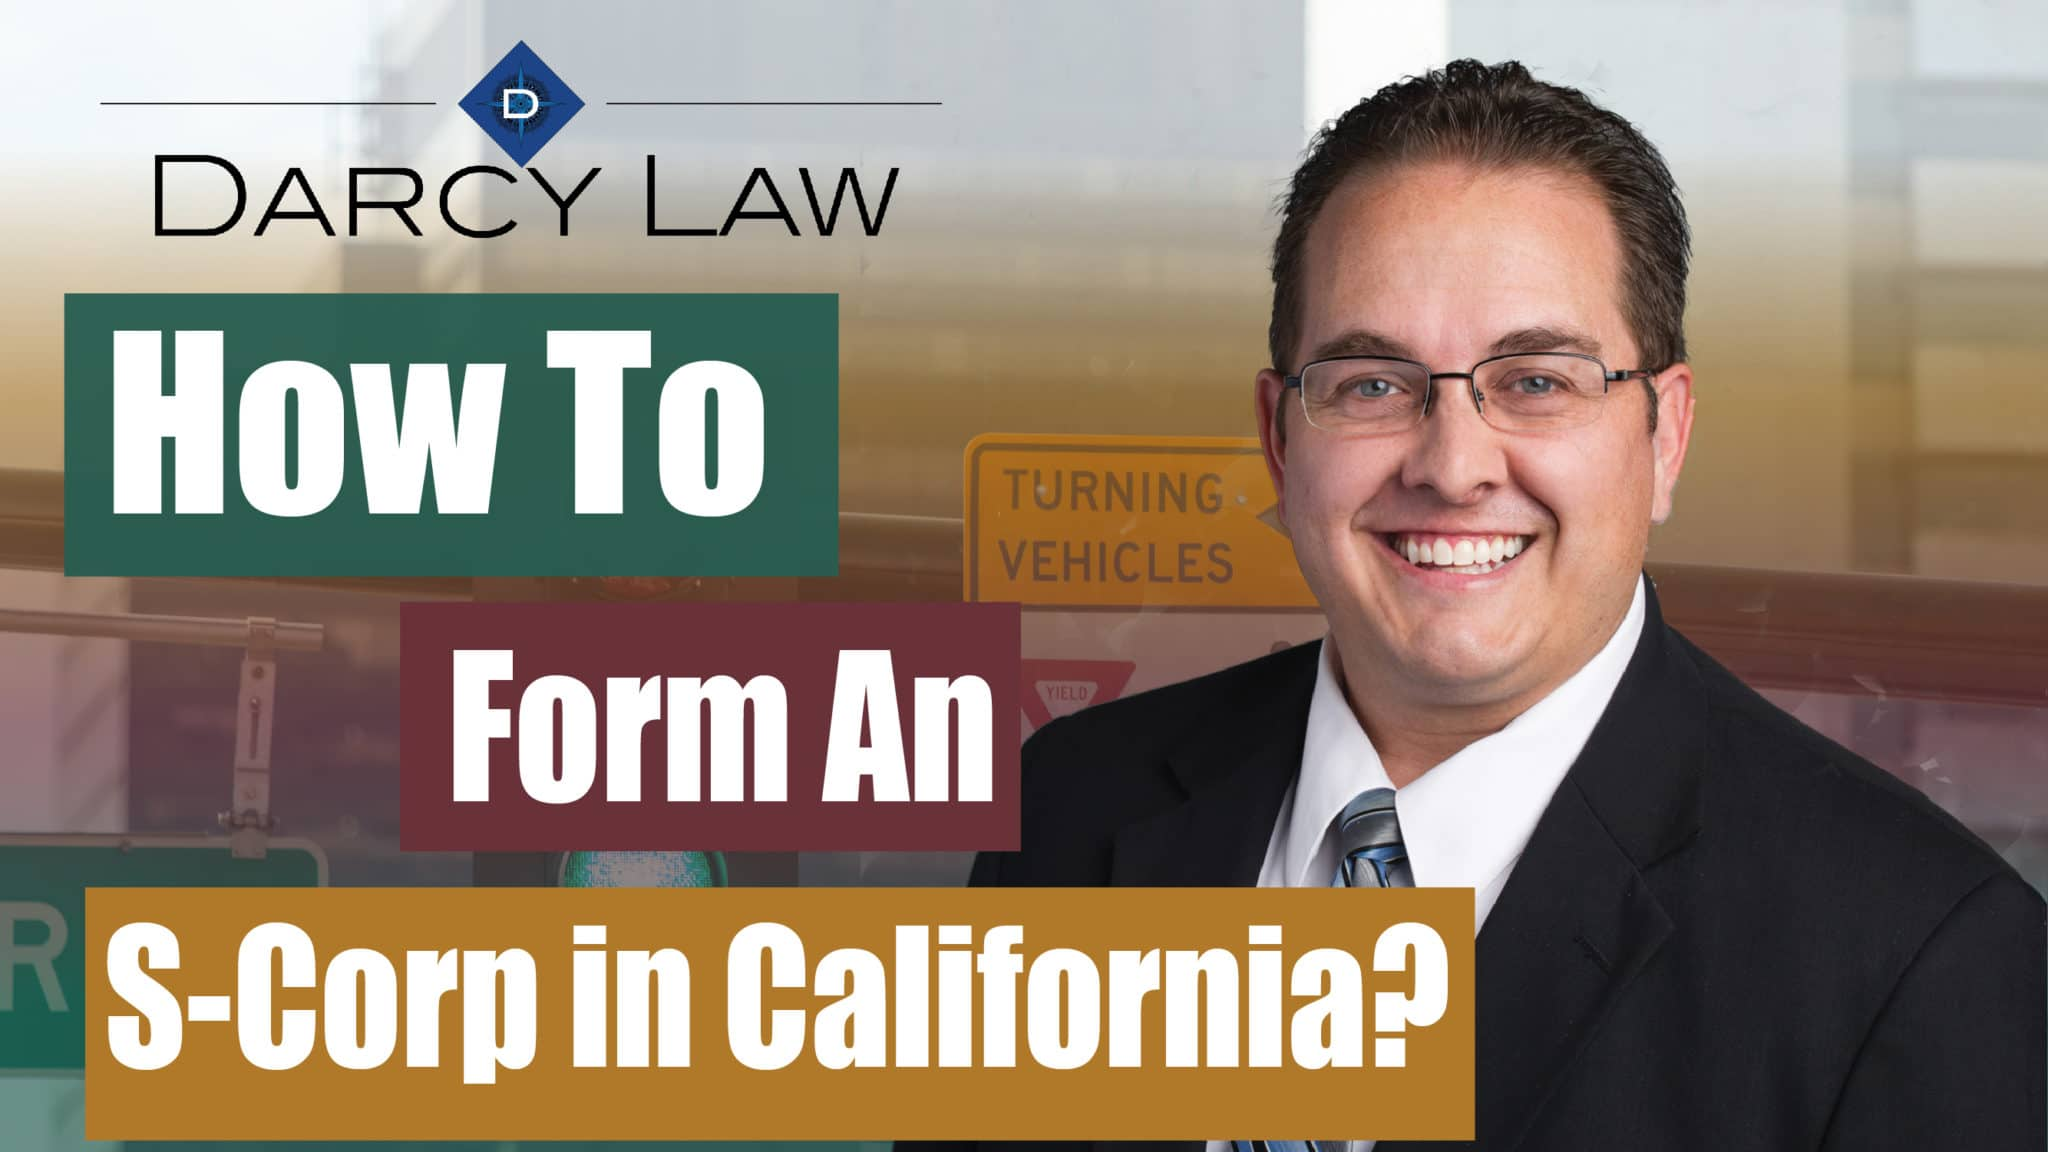 How to Form an S-Corp in California?